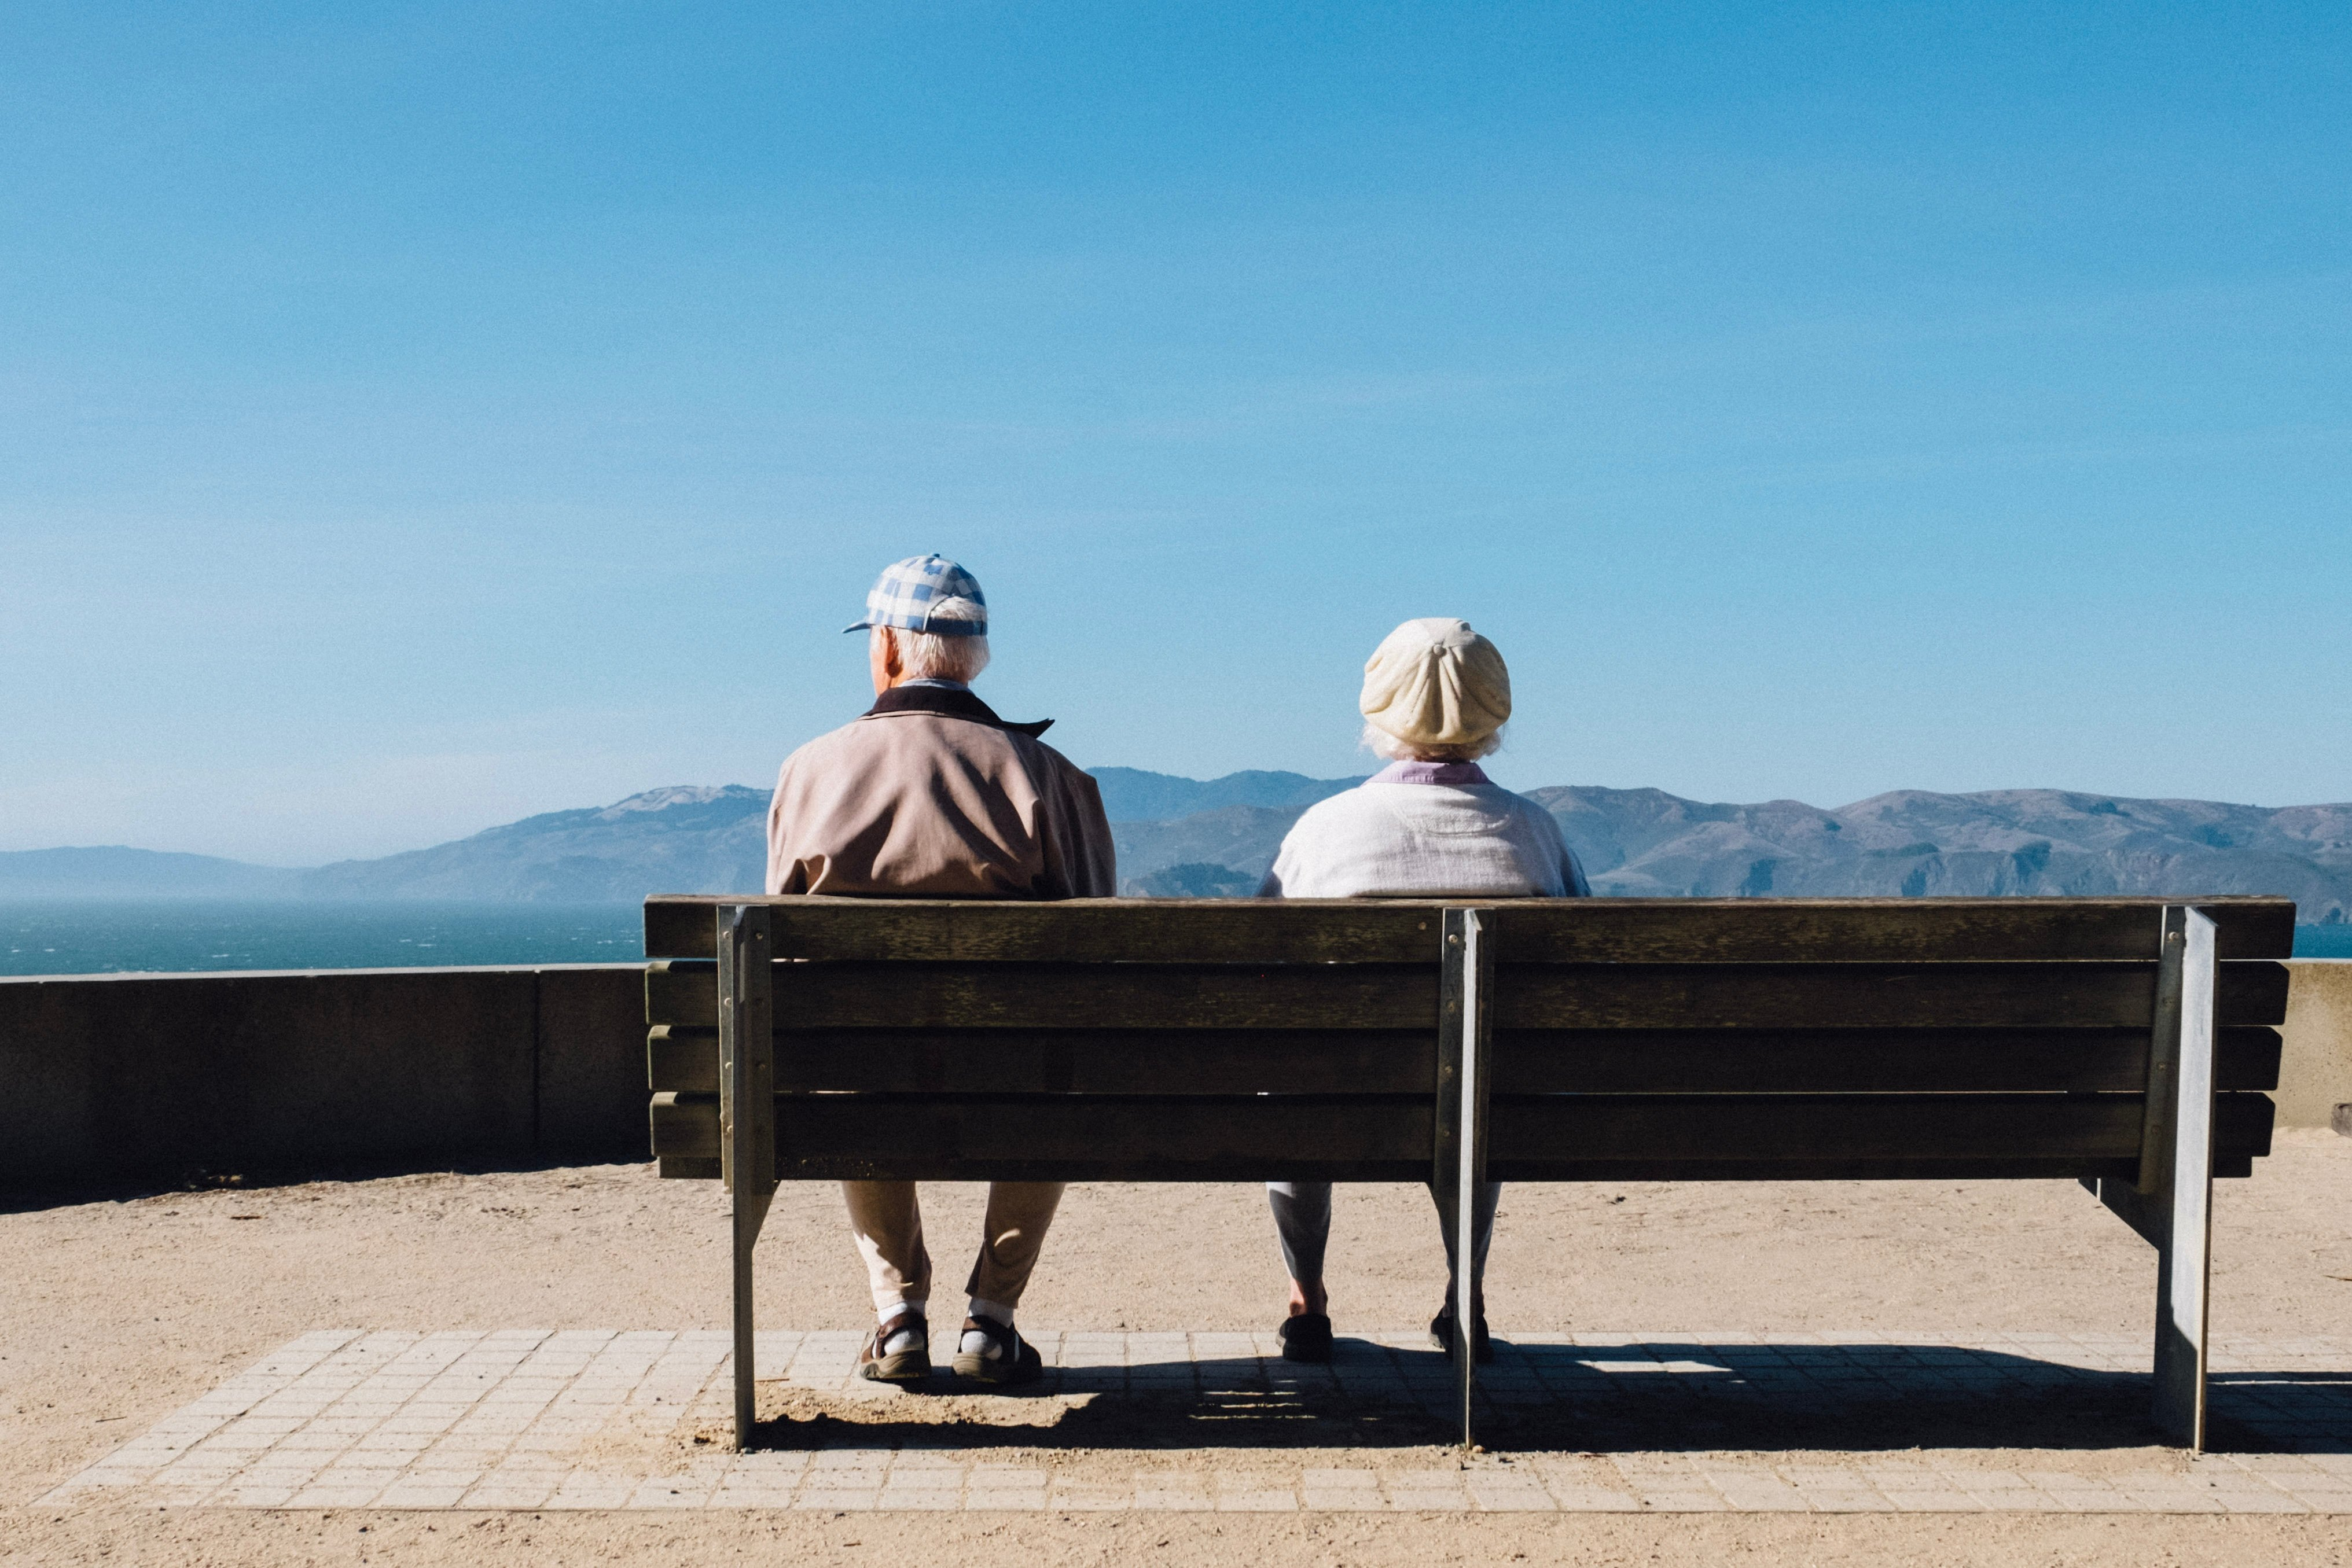 An old couple sitting on a bench | Source: Unsplash.com